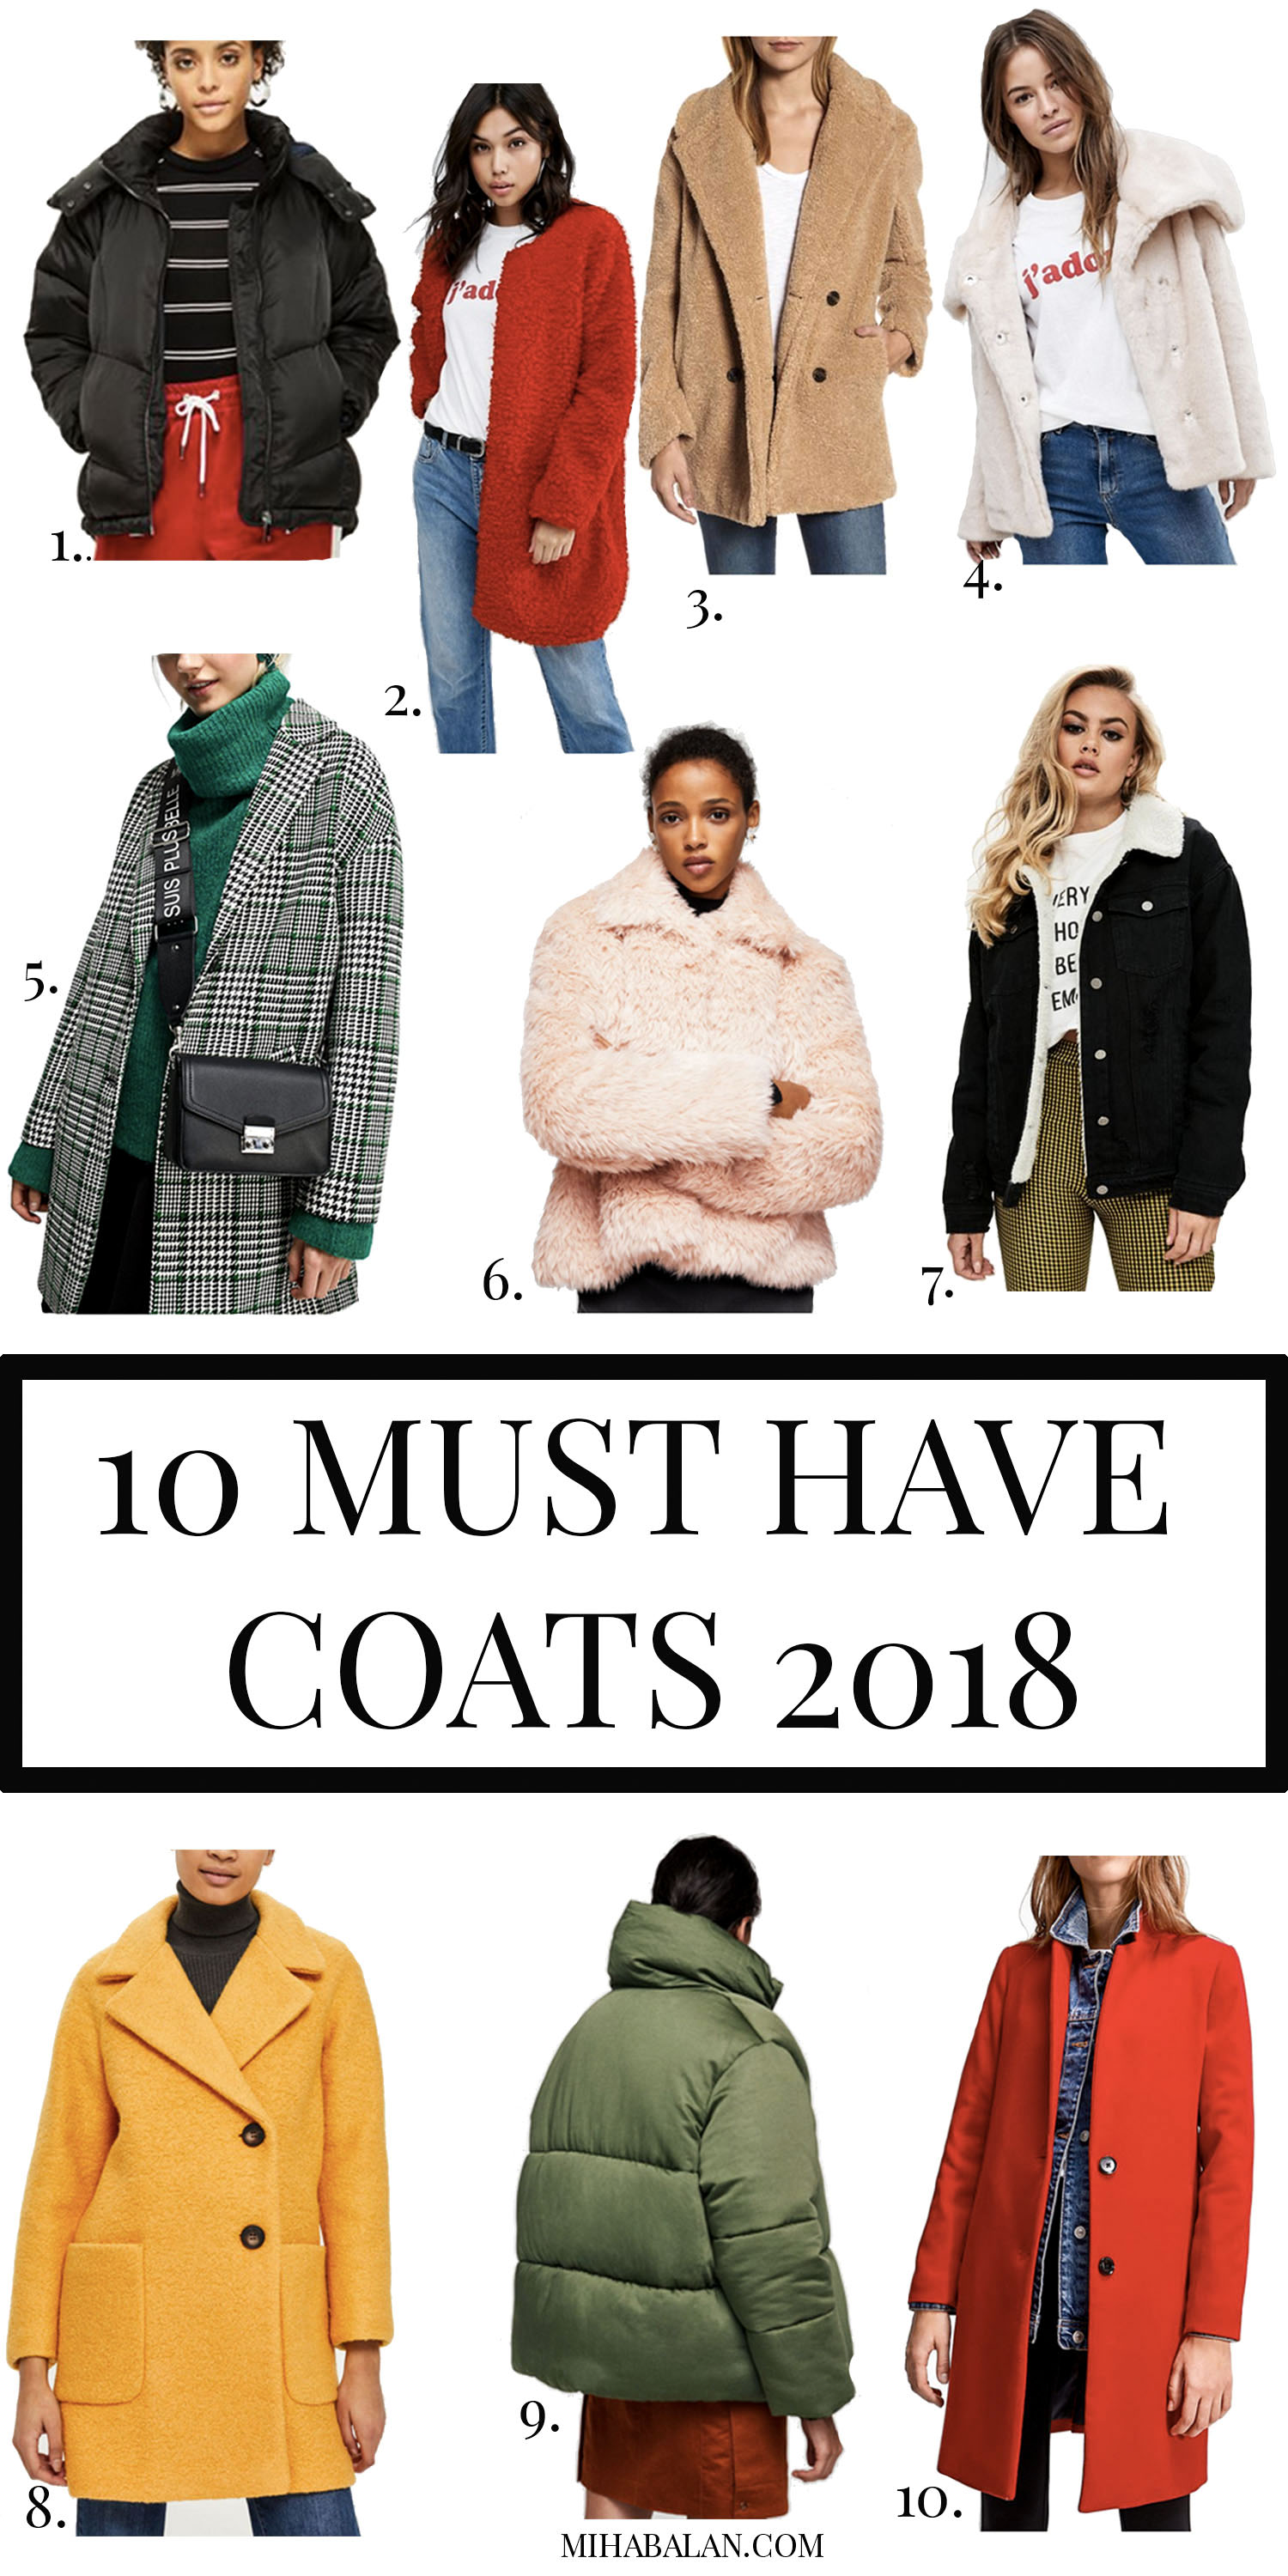 Women coats and jackets 2018, women fashion, winter fashion 2018